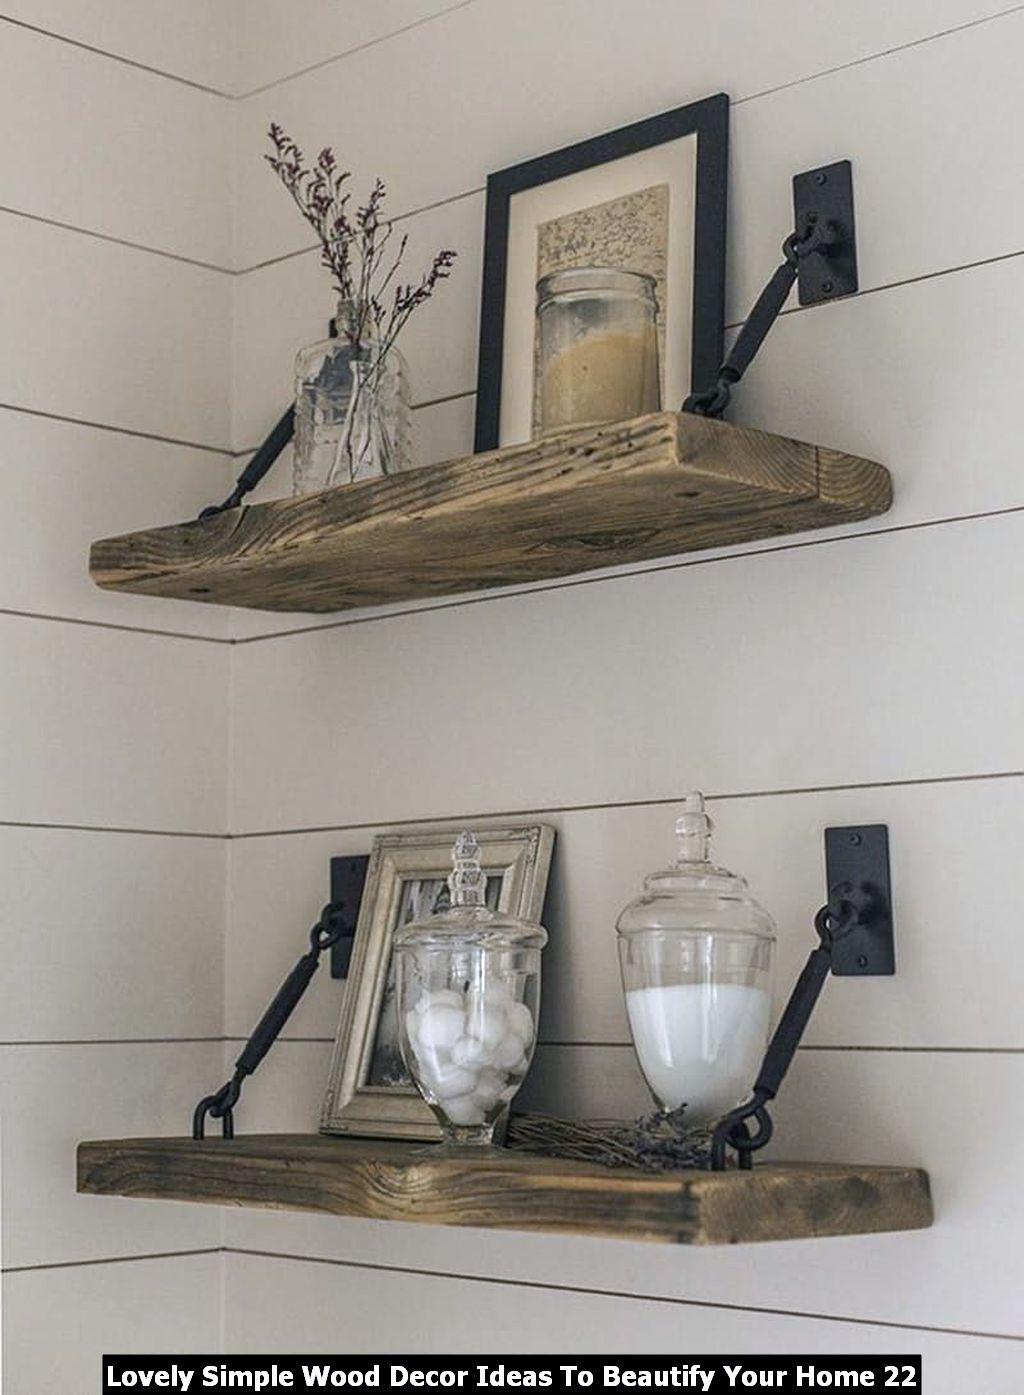 Lovely Simple Wood Decor Ideas To Beautify Your Home 22